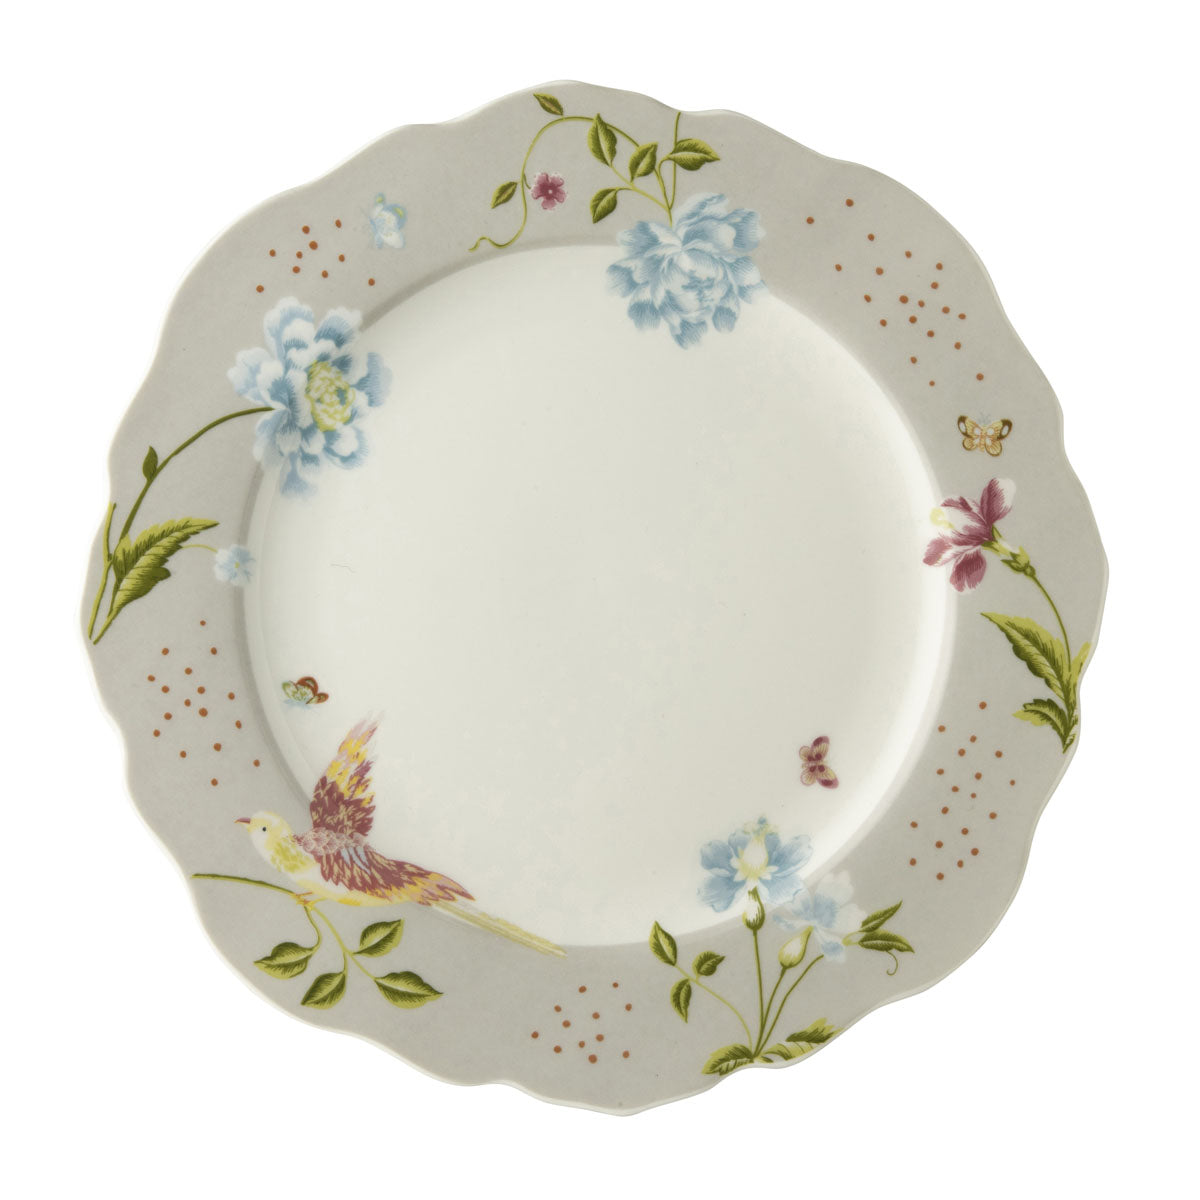 Bord , schulp Cobble Uni Laura Ashley Heritage